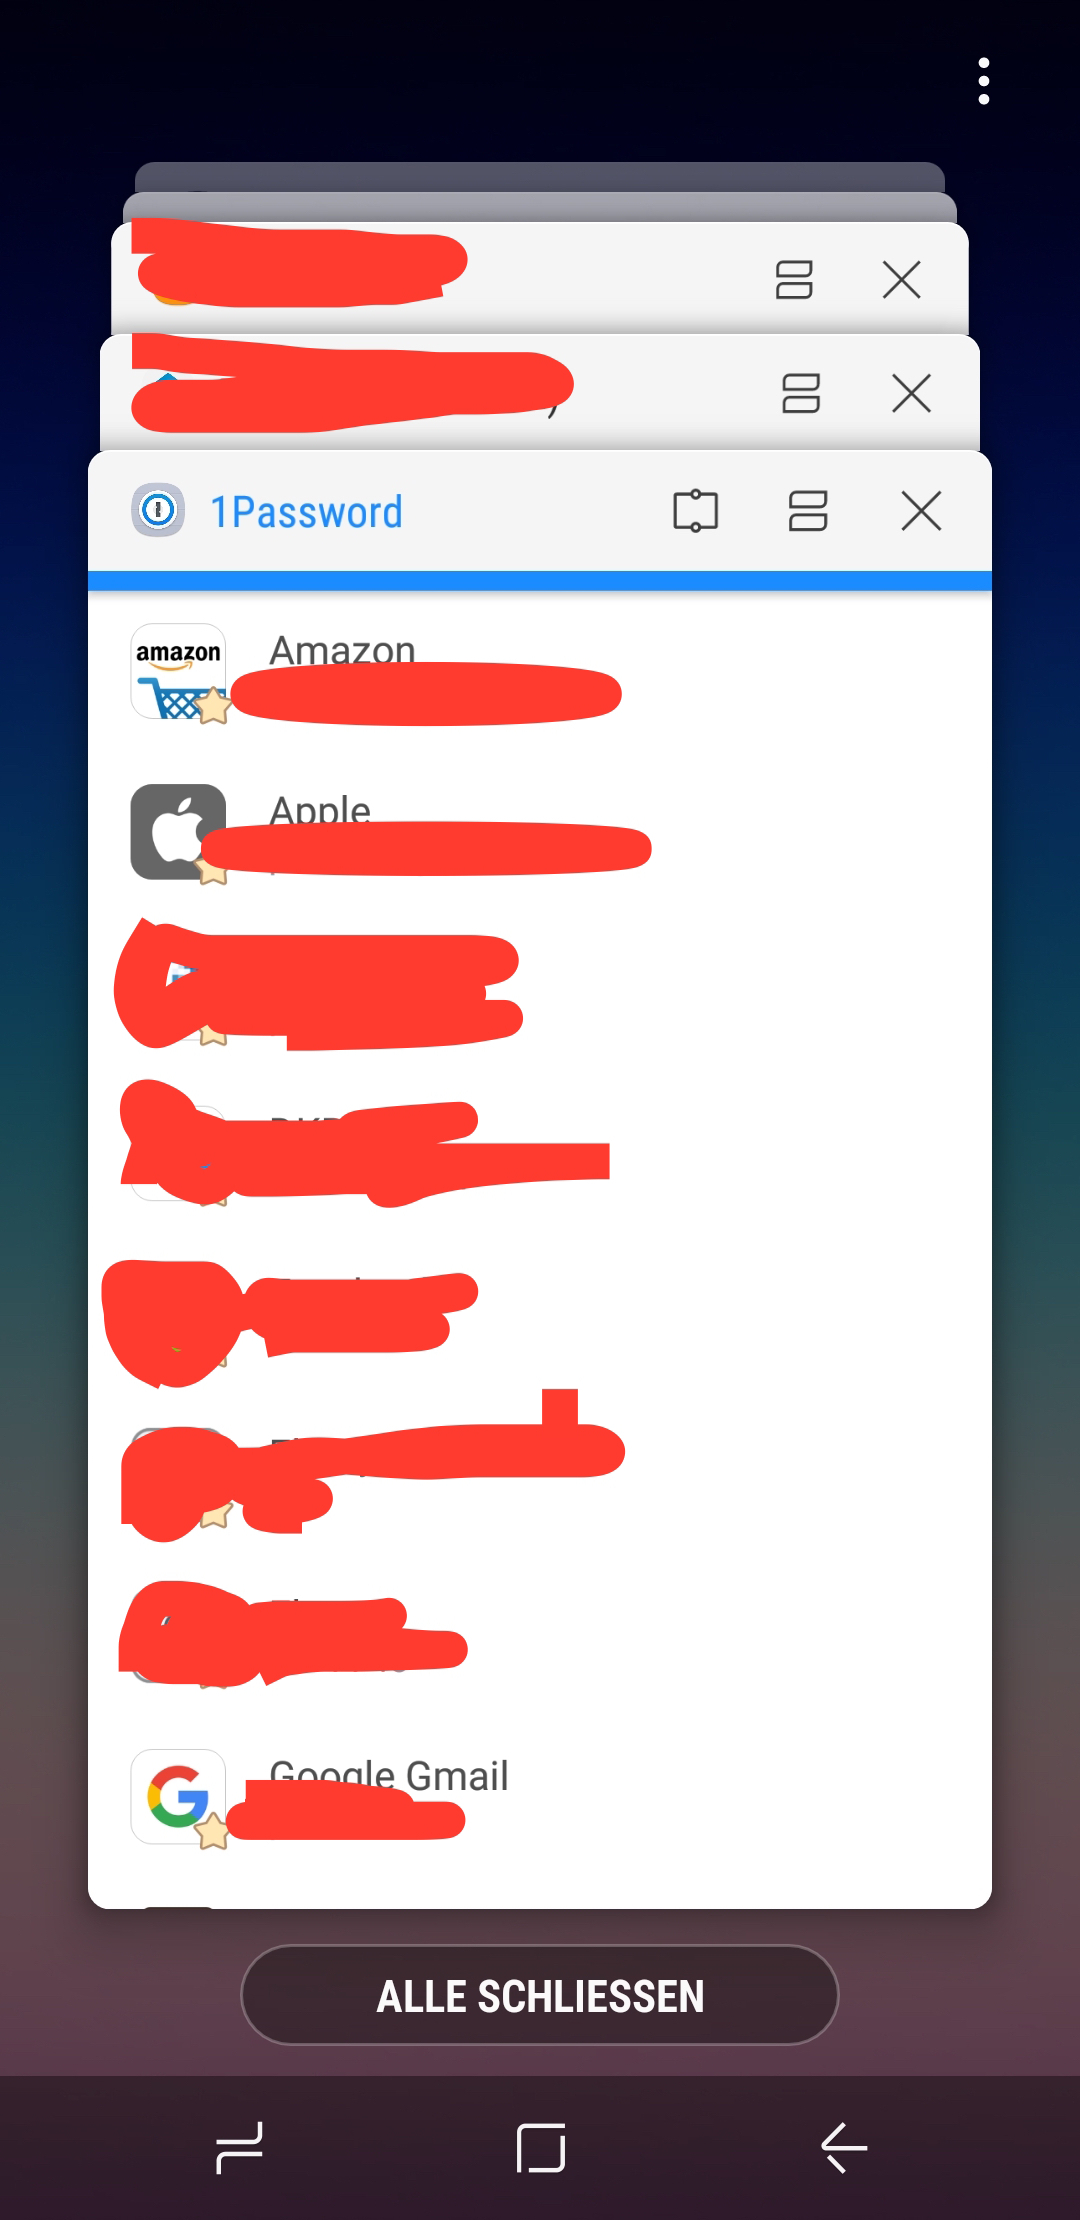 Samsung phone does show details in app switcher — 1Password